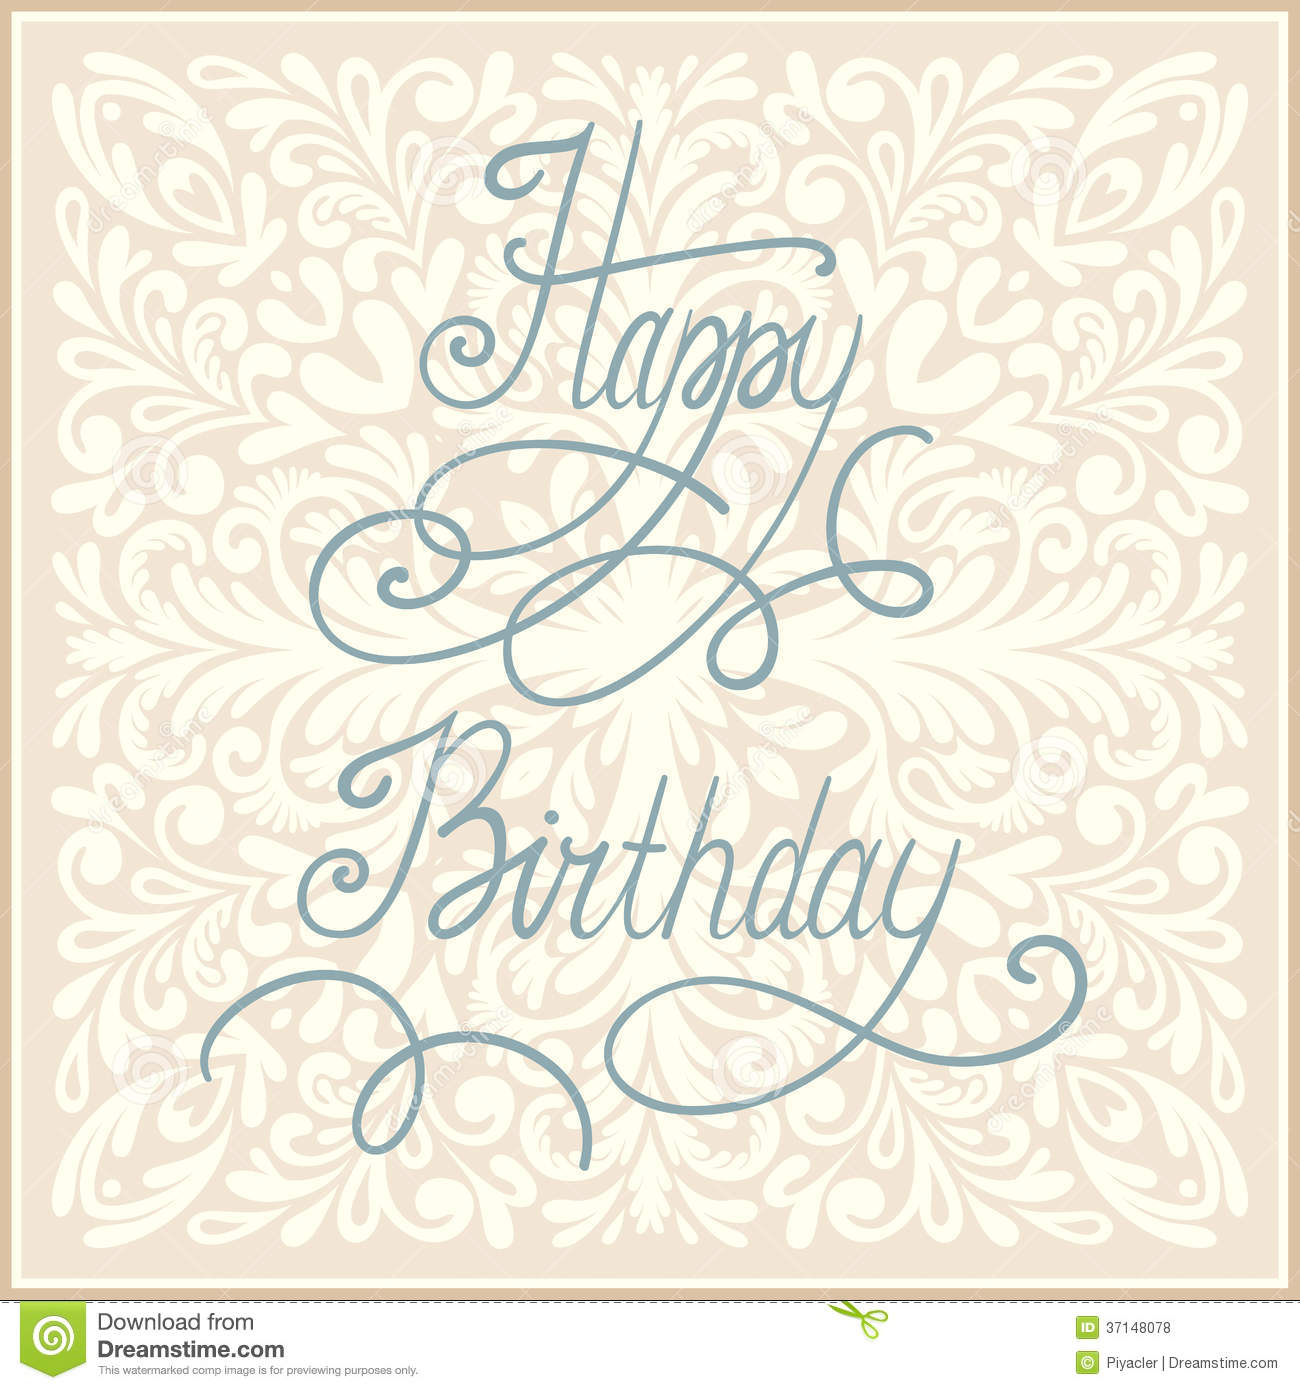 birthday greeting card design free ; happy-birthday-greeting-card-design-vector-illustration-37148078